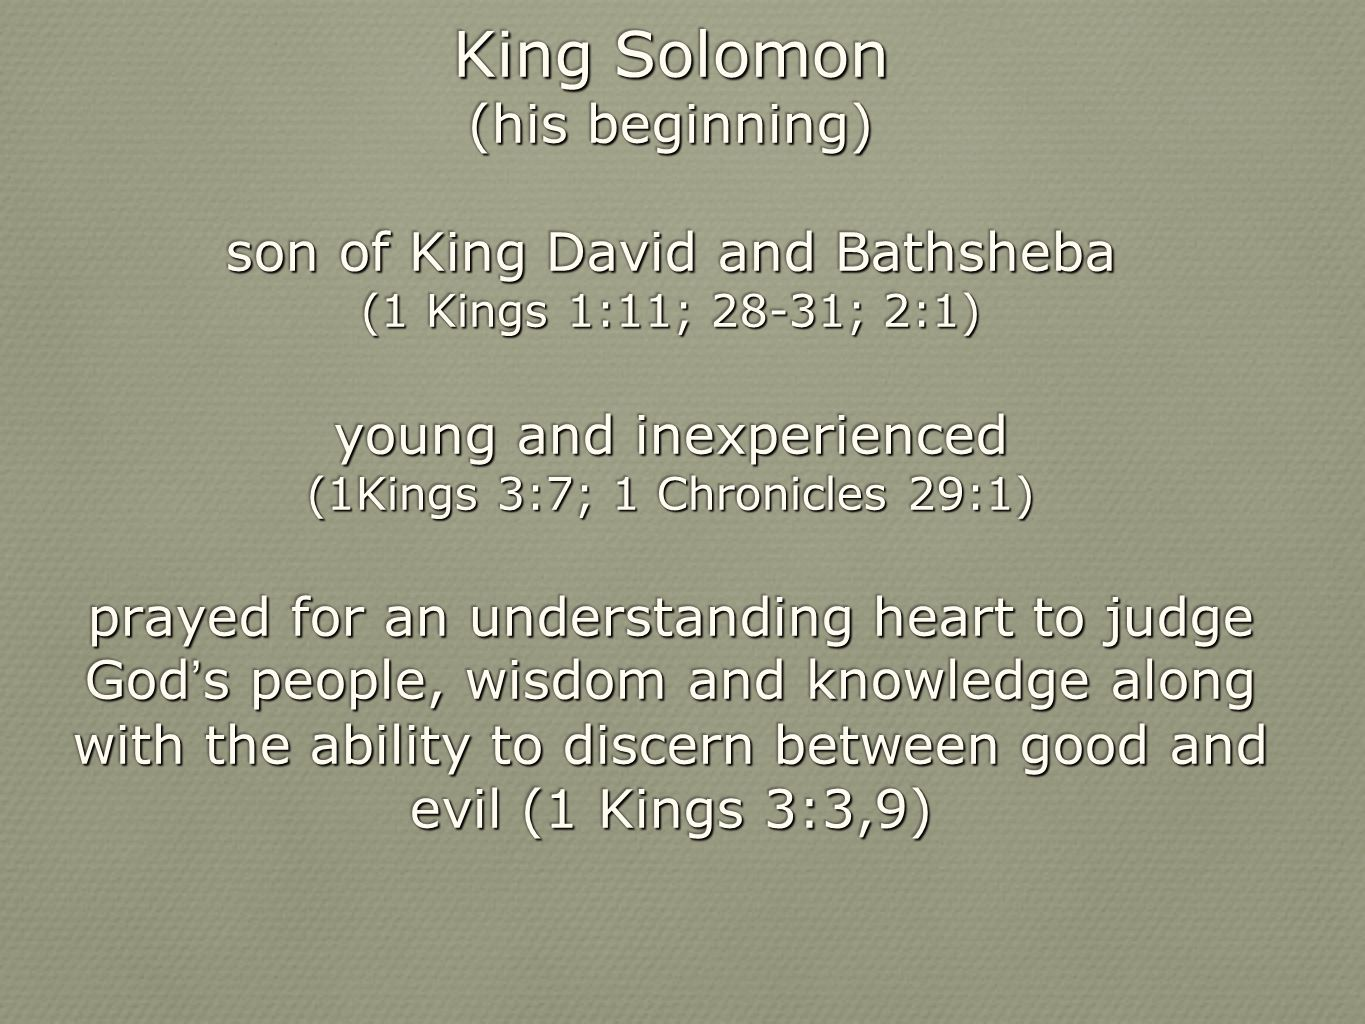 a story of king solomons adventures kingdom and wisdom King solomon king solomon was the third and the greatest king of israel he was the second son of david by his wife bathsheba, and th apart from having a great wisdom, solomon was also a just and discerning judge the scene in which two women ask him to decide who is the real mother of the.